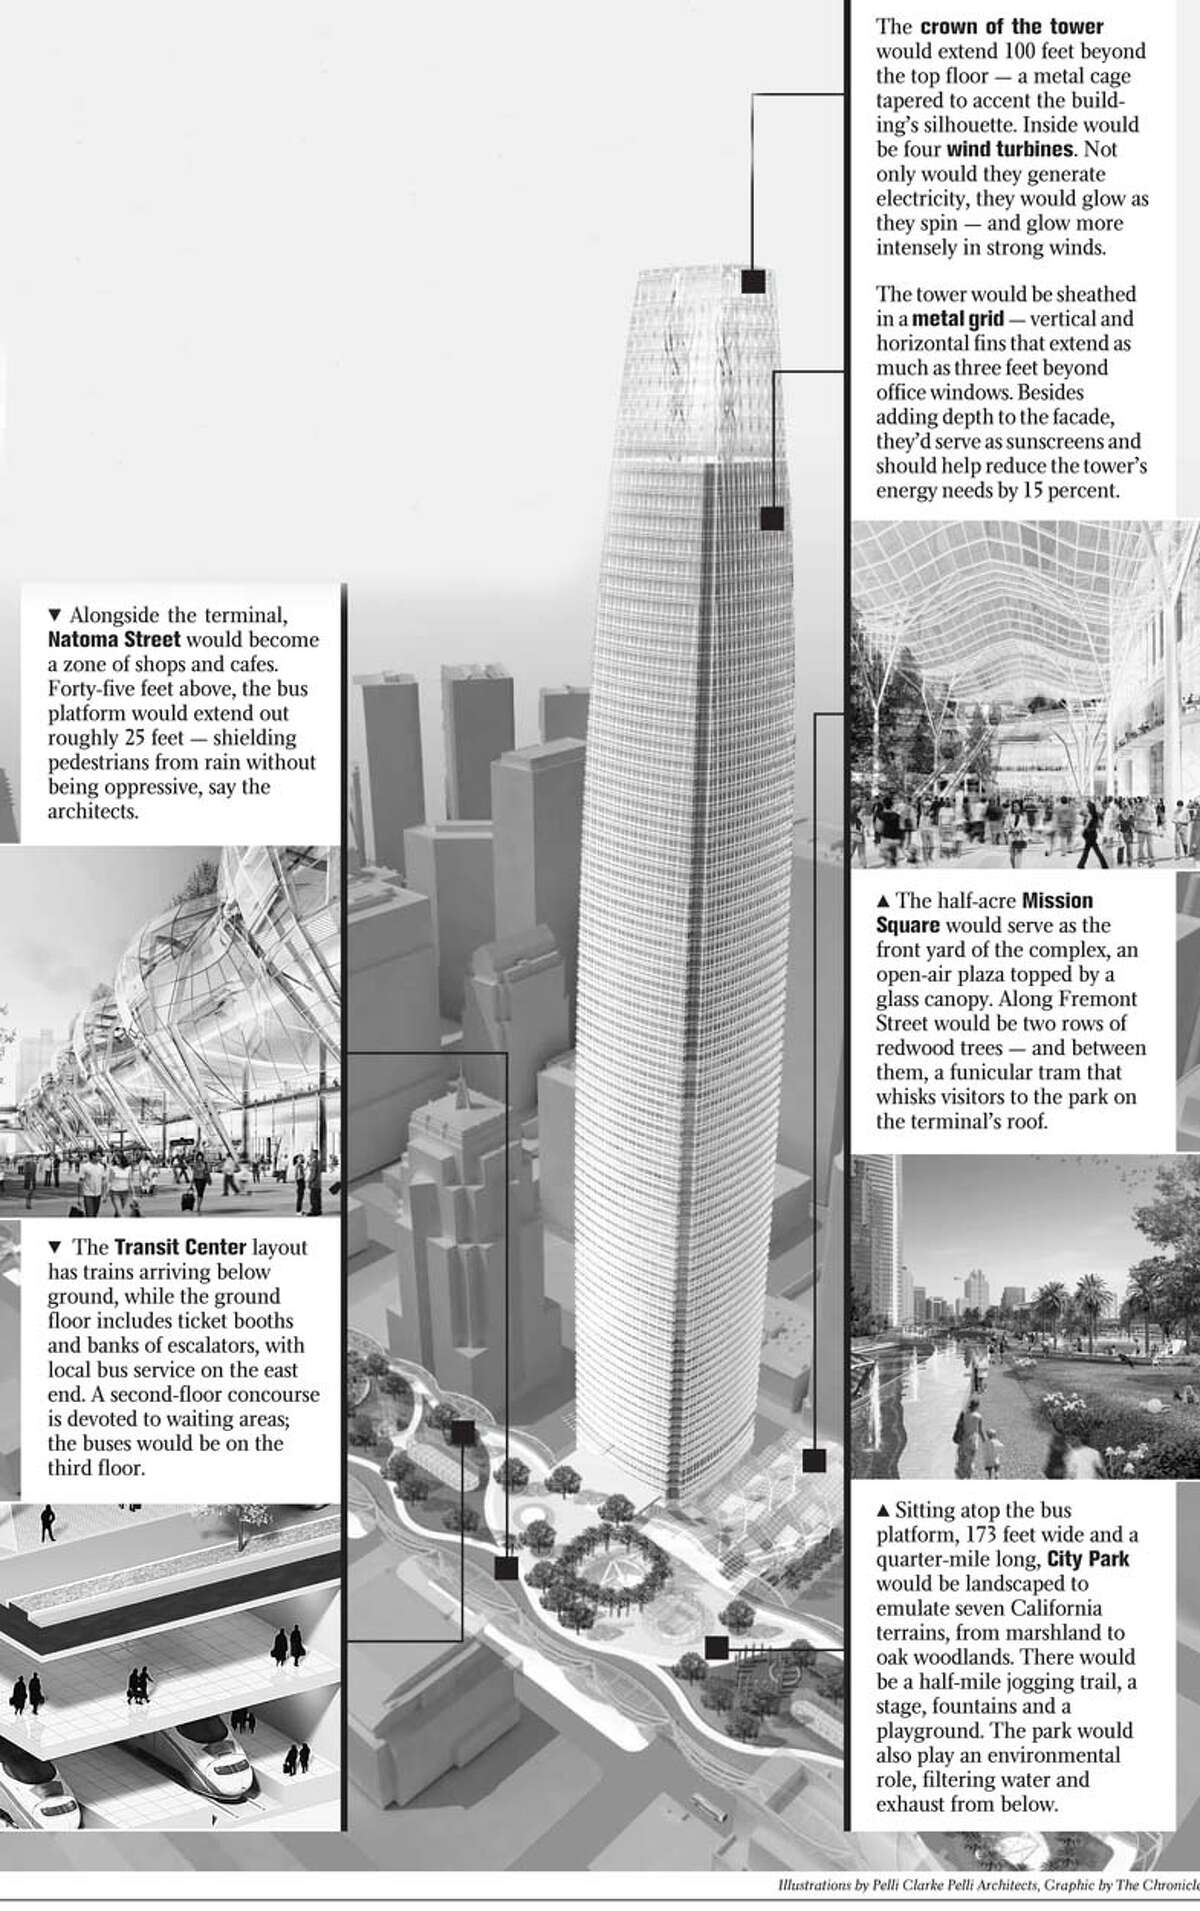 The details are certain to change as the project evolves, but the complex selected by the Transbay Joint Powers Authority includes an 80-story office tower at First and Mission streets that would climb 1,200 feet and contain 1.6 million square feet of space. Alongside it, a transit station topped by a park would stretch from Beale Street nearly to Second Street. Illustrations by Pelli Clarke Pelli Architects. Graphic by the Chronicle